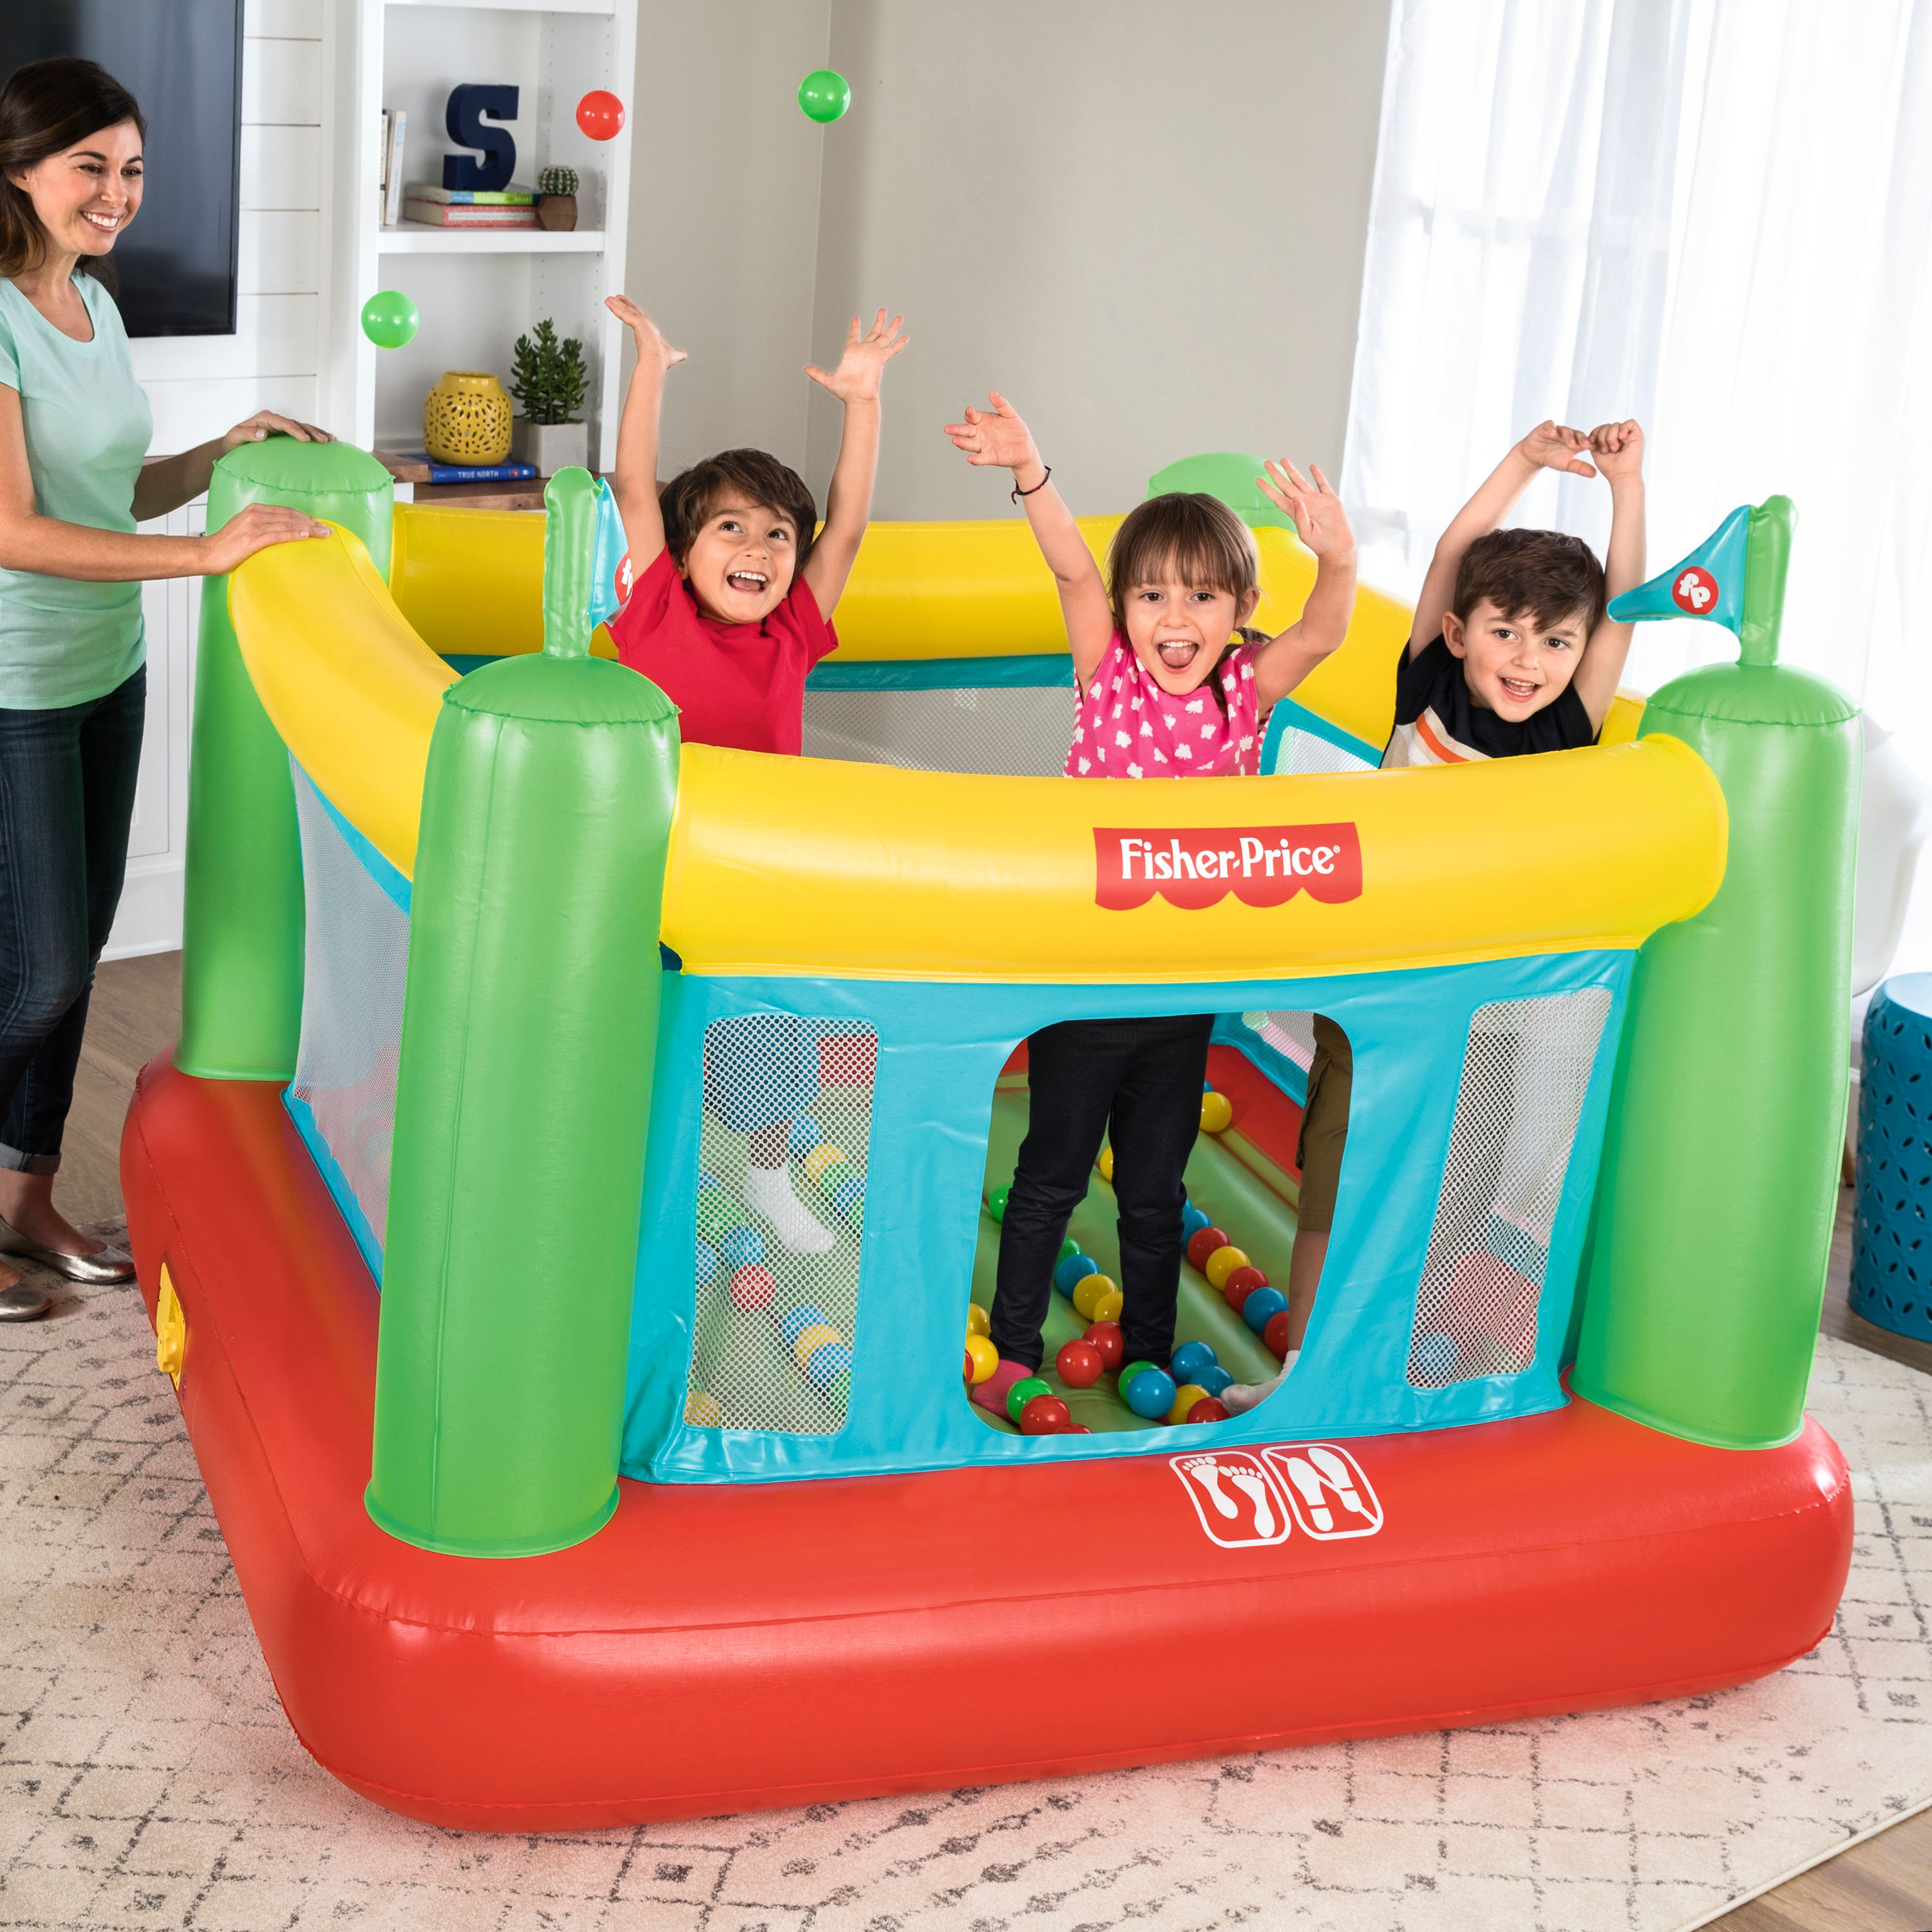 "Fisher-Price 69"" x 68"" x 53"" Bouncer with Built-in Pump and 50 Playballs"